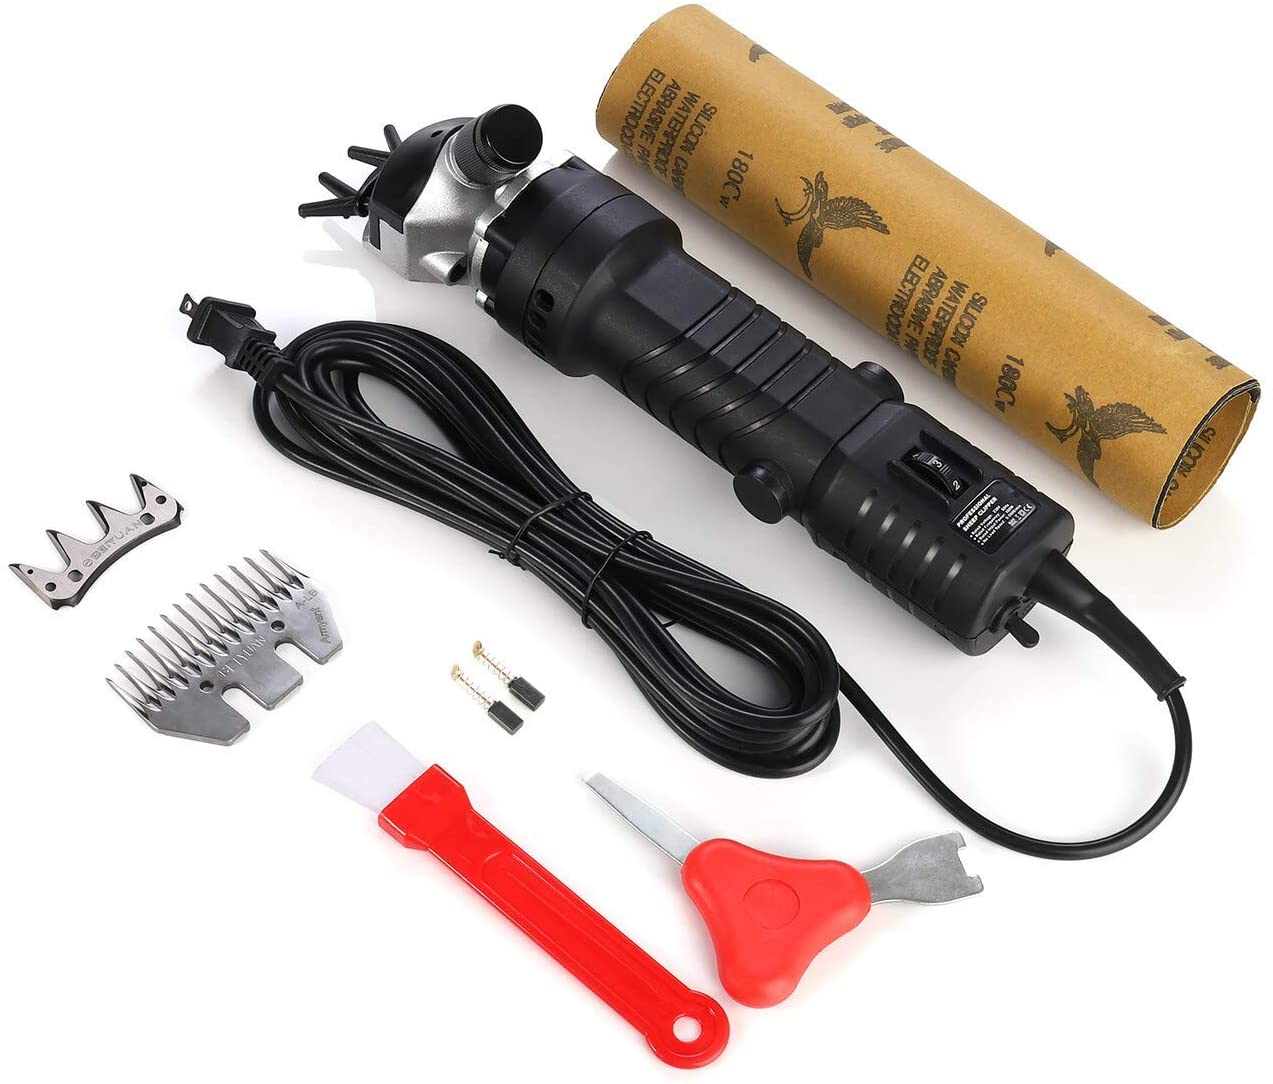 Electric Sheep Shears Goat Clippers Animal Shave Grooming Farm Pet Supplies - 220V